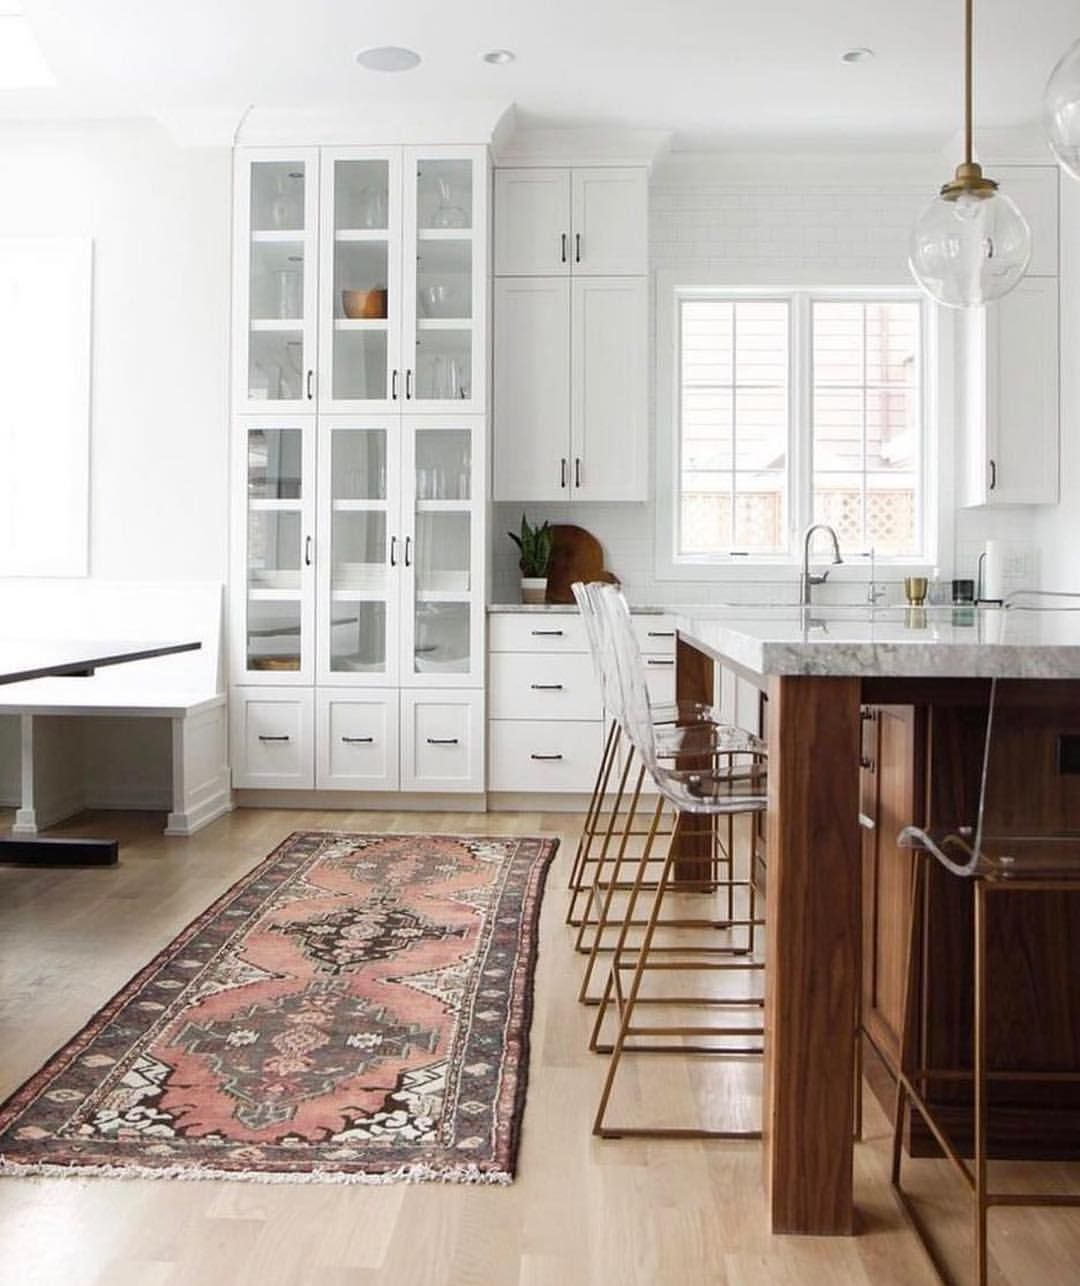 Kitchens We have rounded up some of